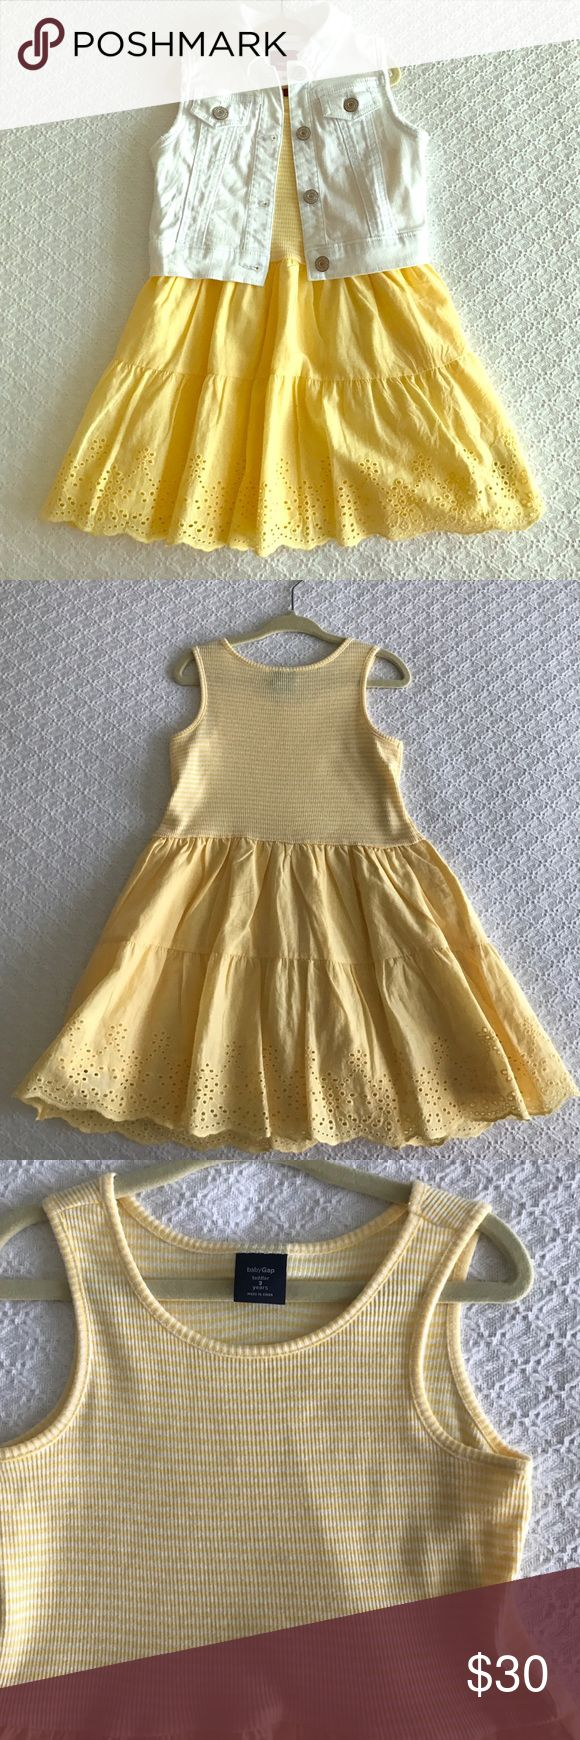 NWOT!! Gap yellow dress with white jean vest NWOT!! Gap yellow sundress with eyelet size 3 with white jean vest size XS (4/5). Can be sold separately. GAP Matching Sets